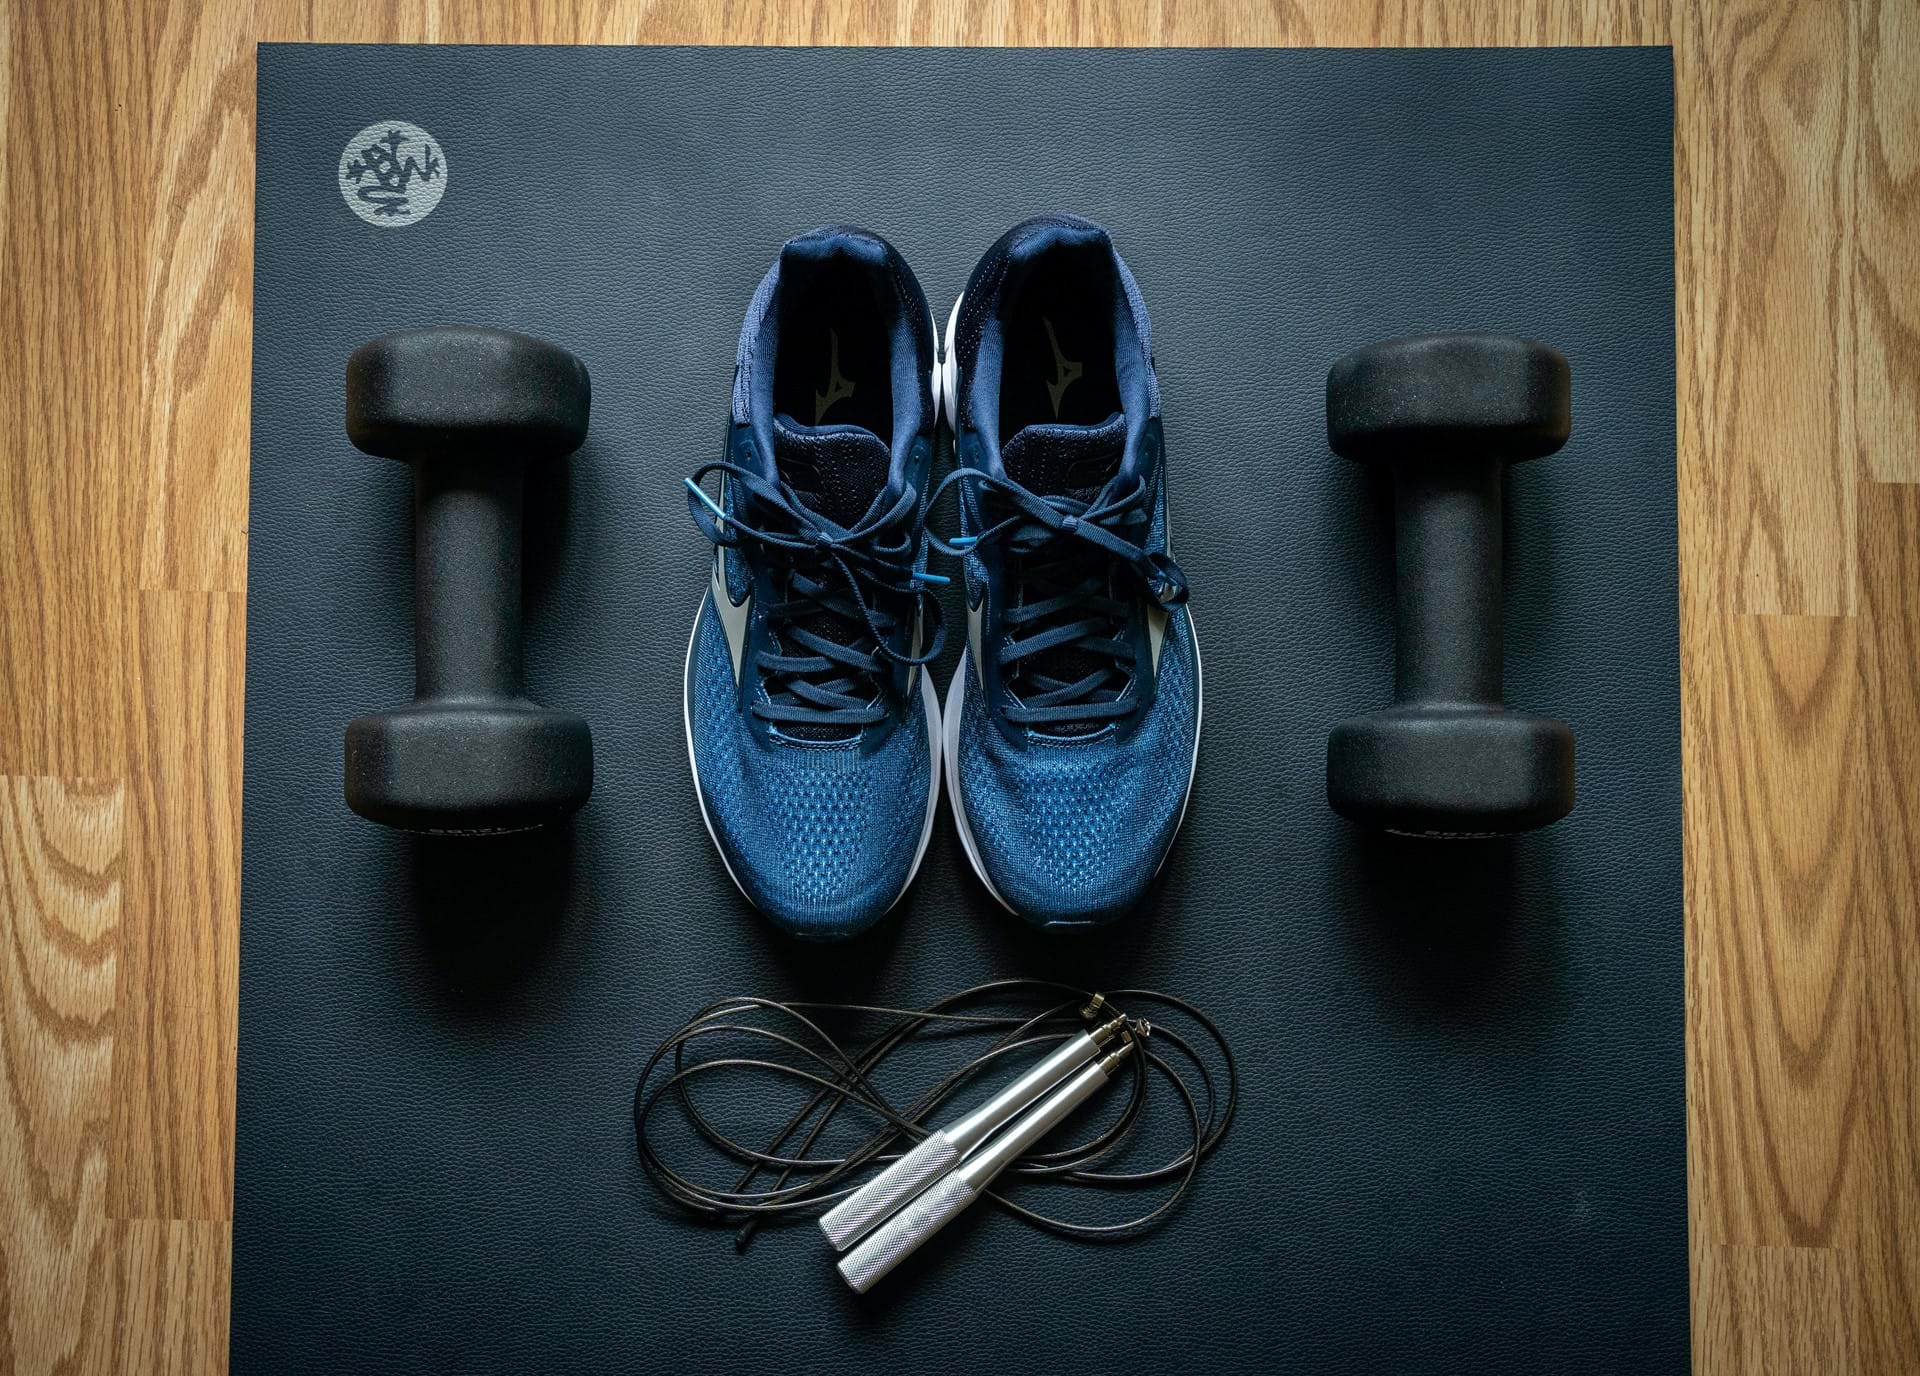 trainers skipping rope weights are seen placed on a work out mat on the floor